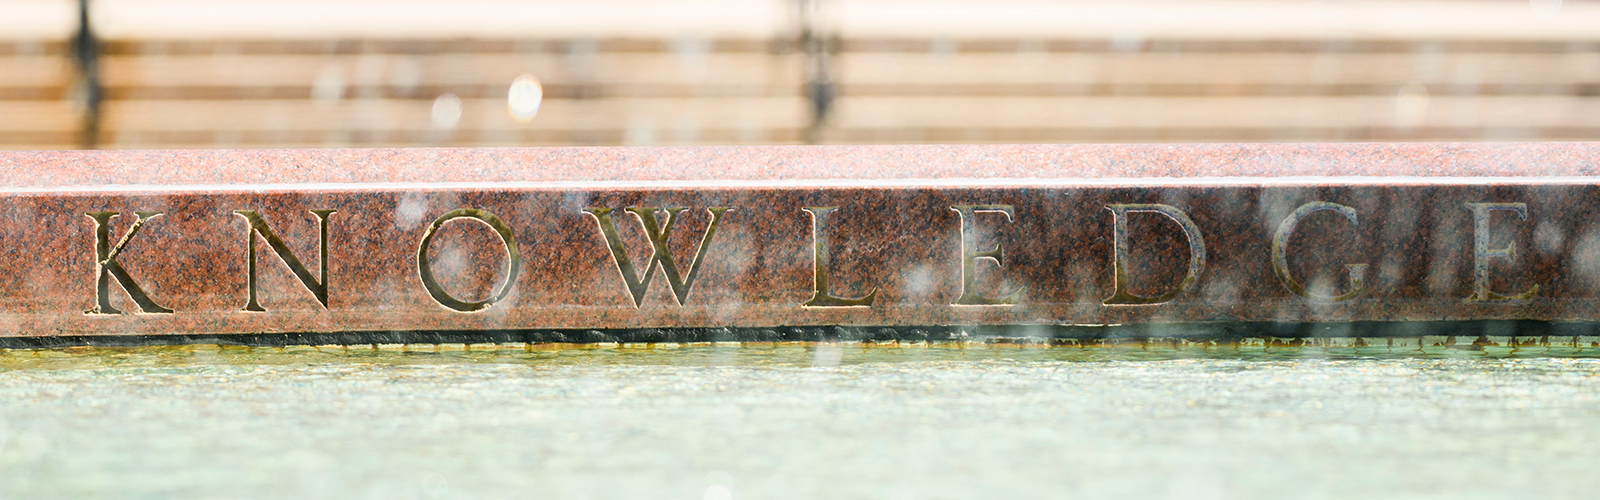 "On Oct. 18, 2017, out-of-focus water spray frames the engraved word 'knowledge"" along the inner edge of the Hagenah Fountain on Library Mall at the University of Wisconsin-Madison."